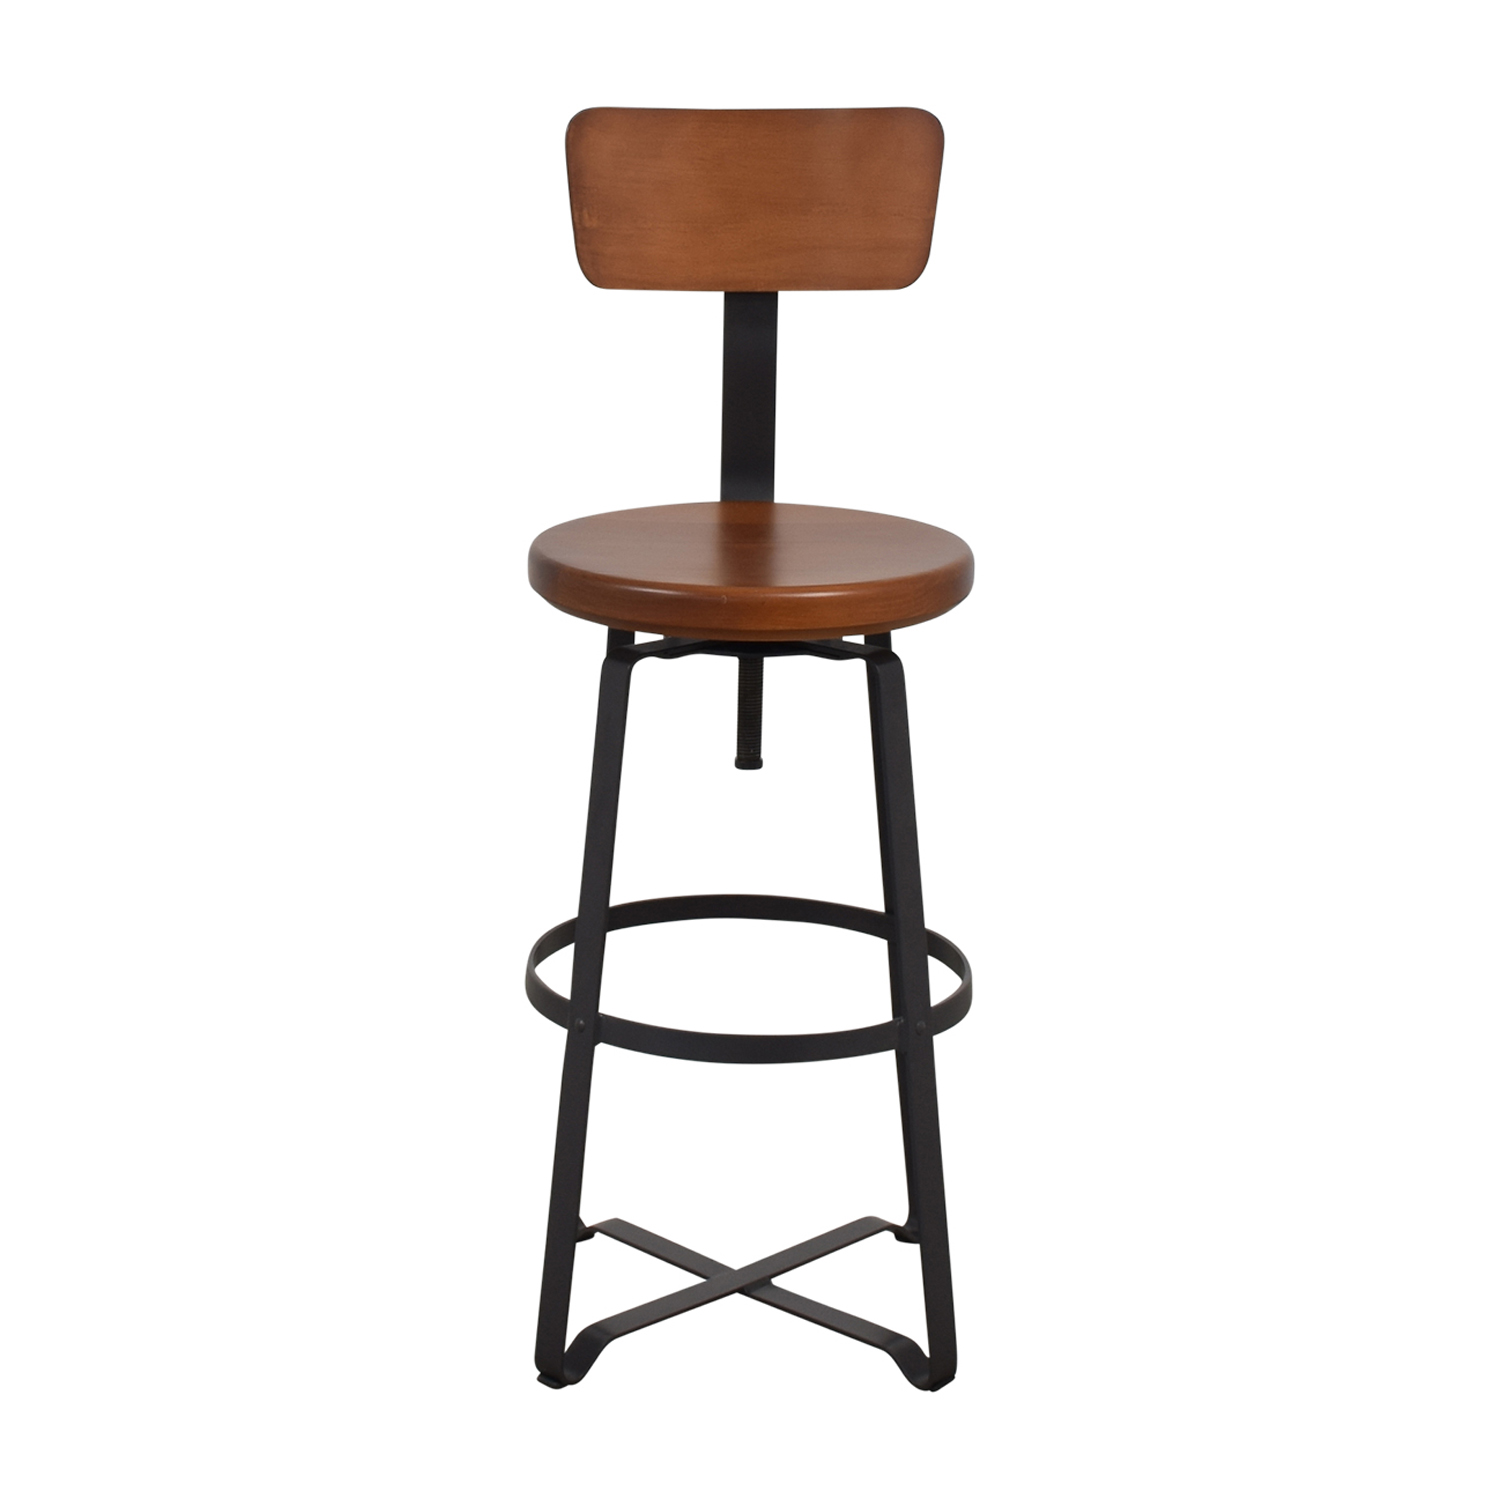 shop West Elm West Elm Adjustable Industrial Swivel Stool online